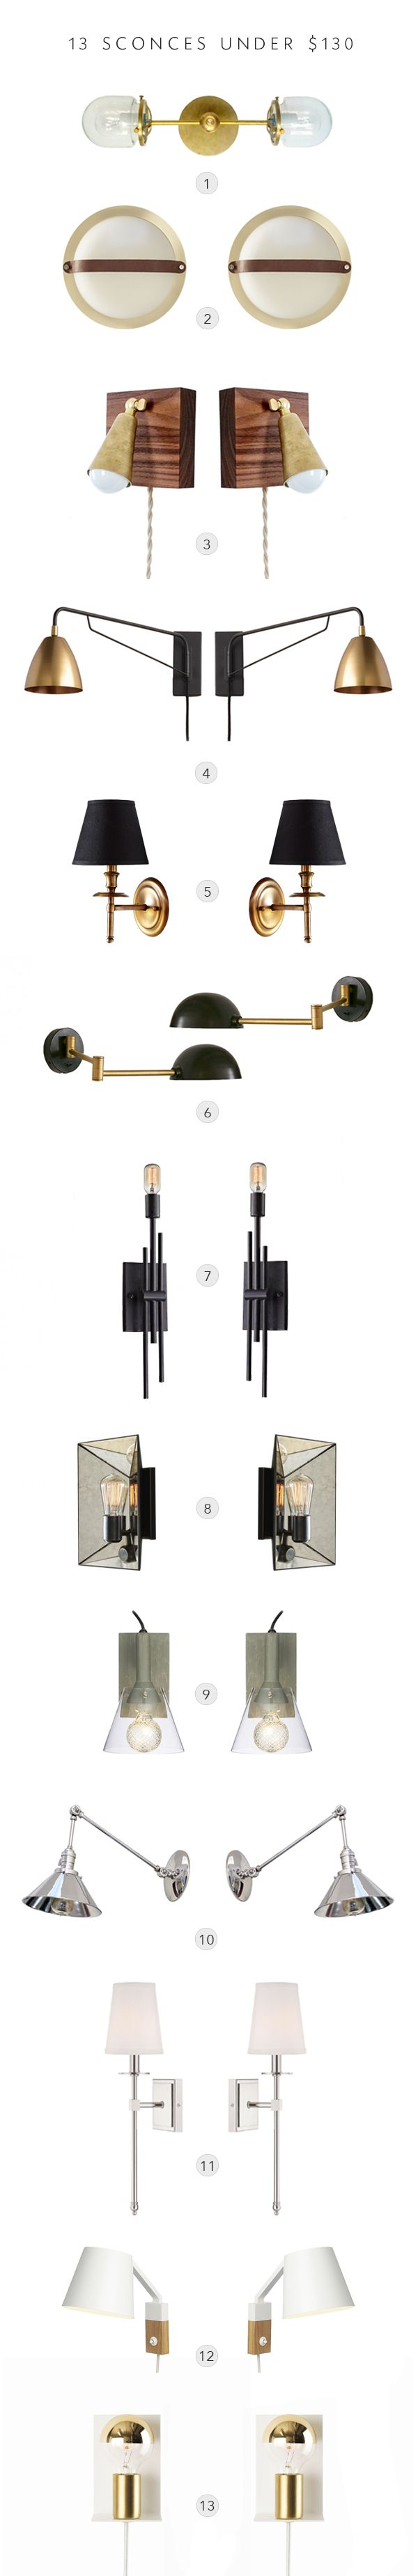 13 sconces under $130 (and most for less!) // lighting roundup from coco+kelley